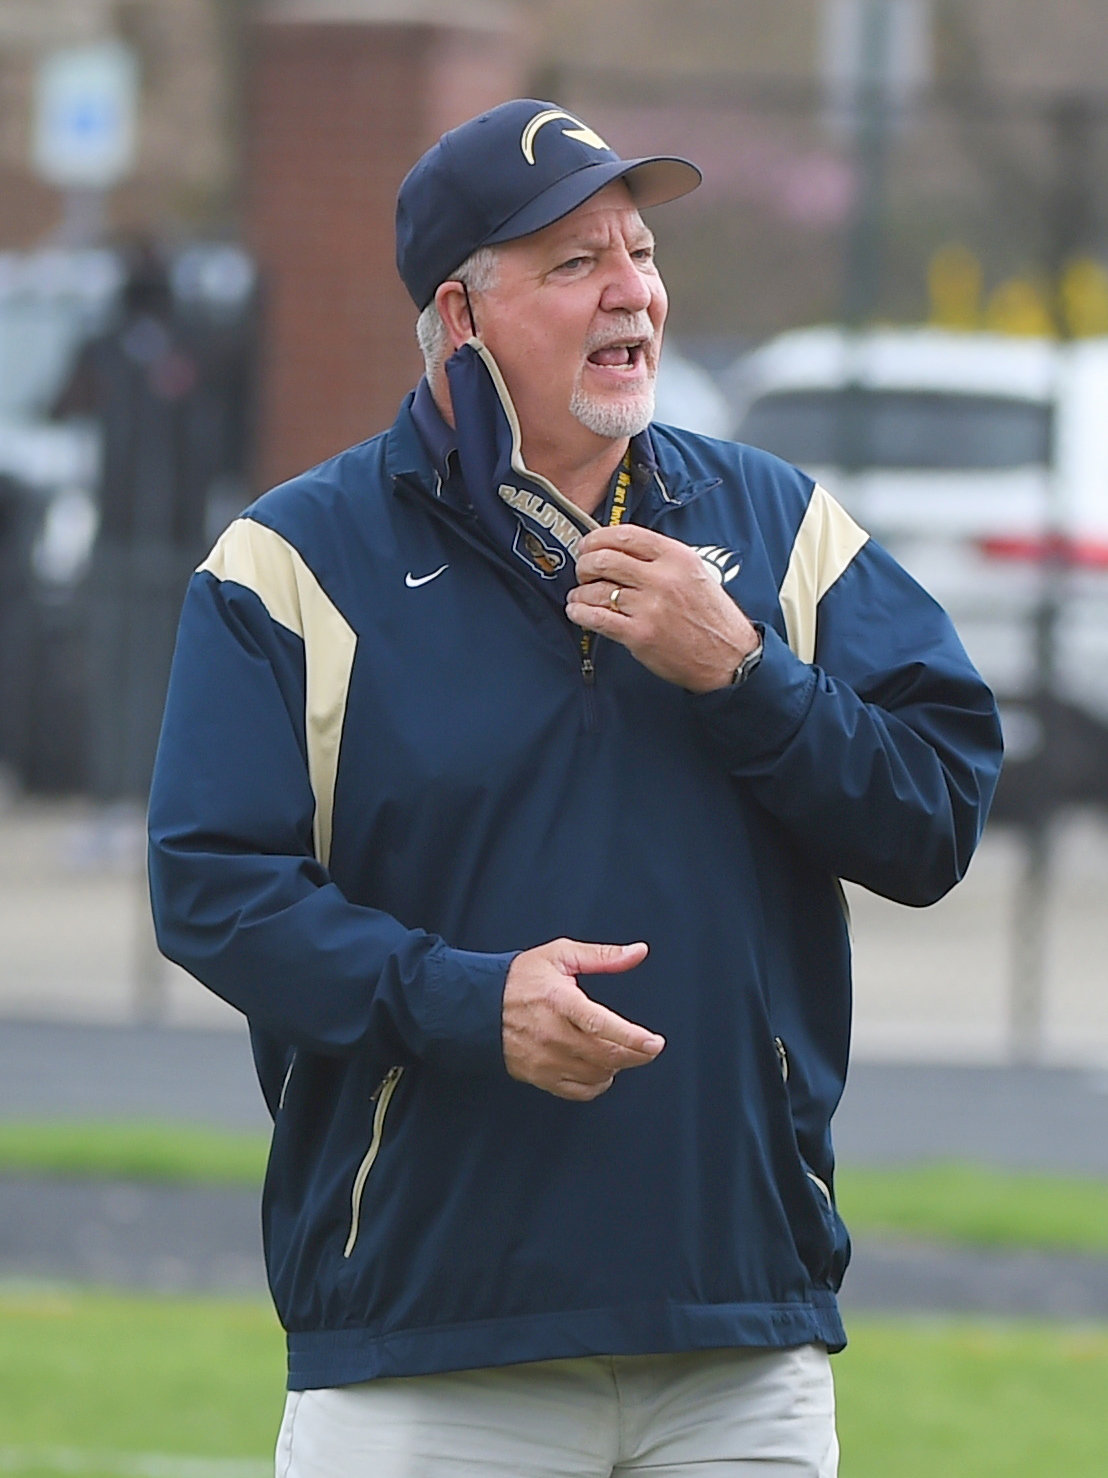 Baldwin head coach Steve Carroll is retiring from the football program after 34 years at the helm and a record 165 victories, including 24 playoff wins and a county title.